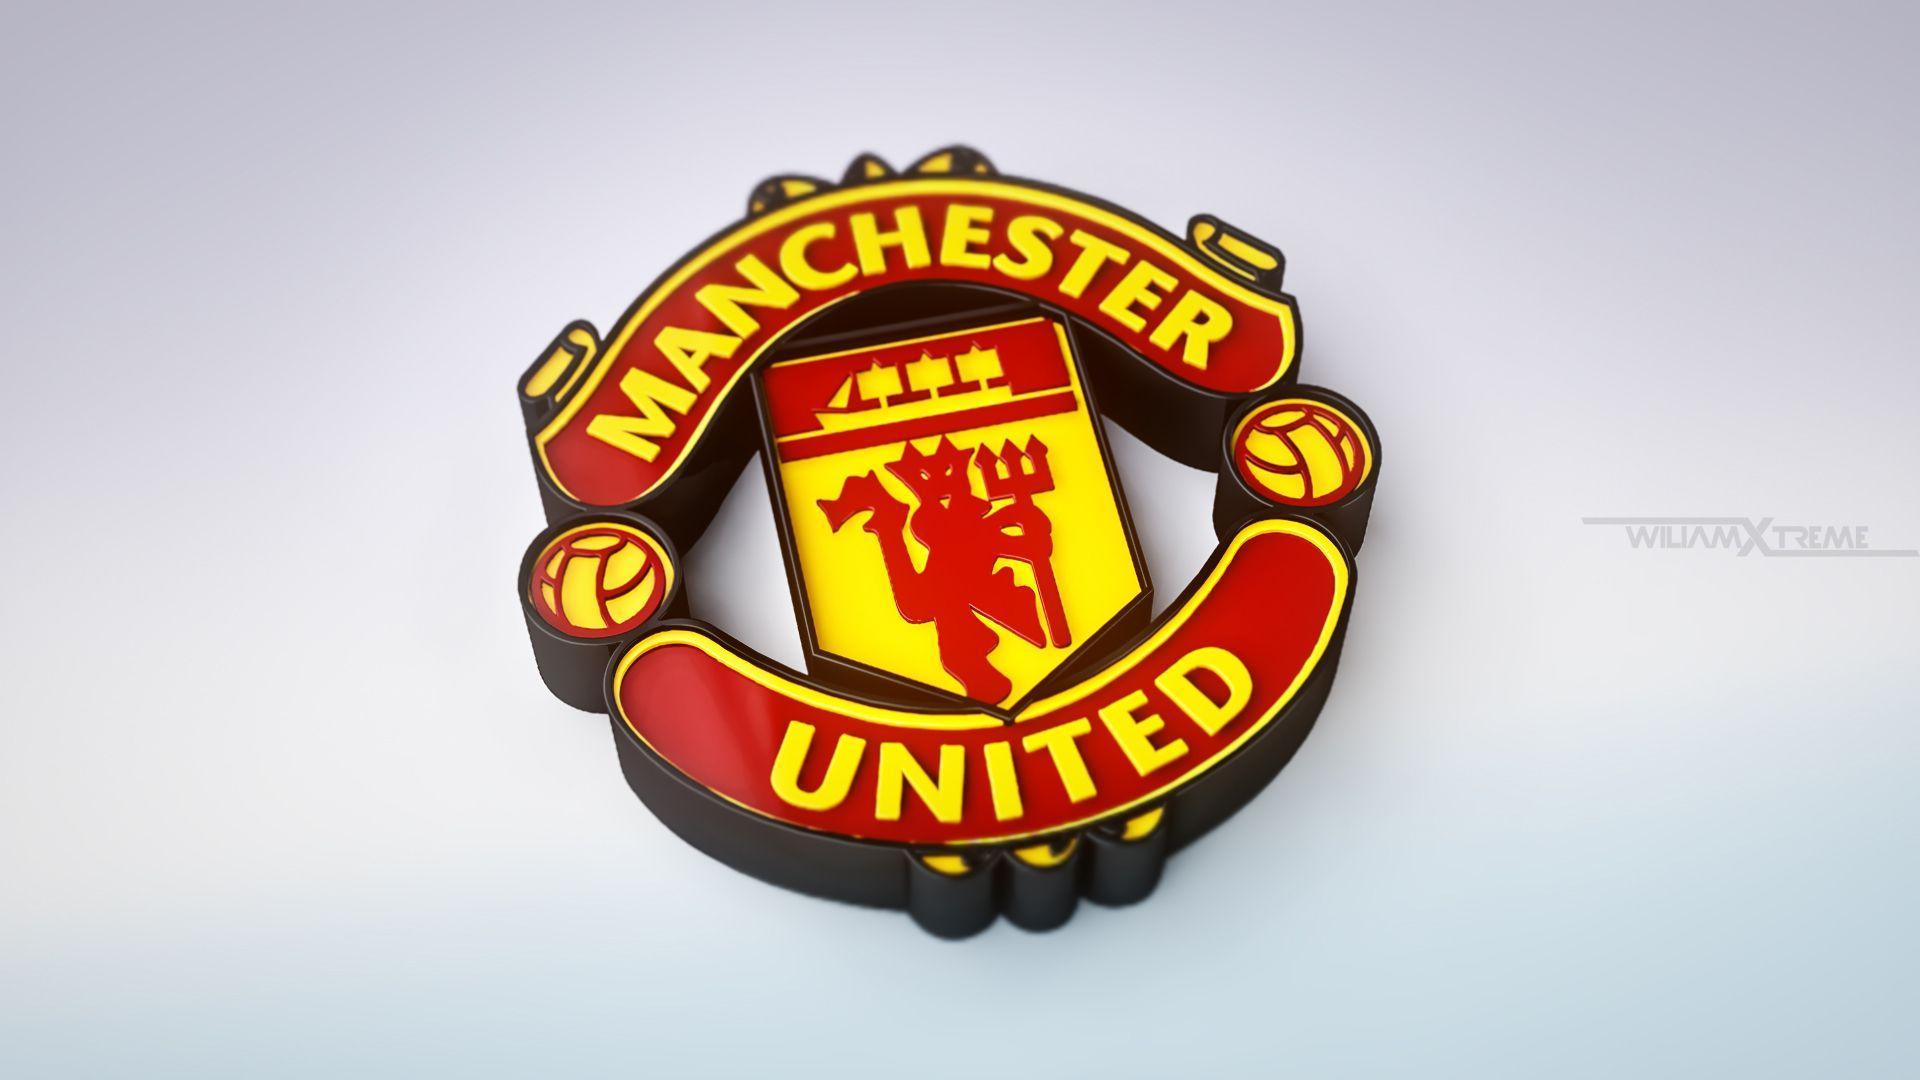 Manchester United Logo Wallpapers | Wallpapers, Backgrounds ...